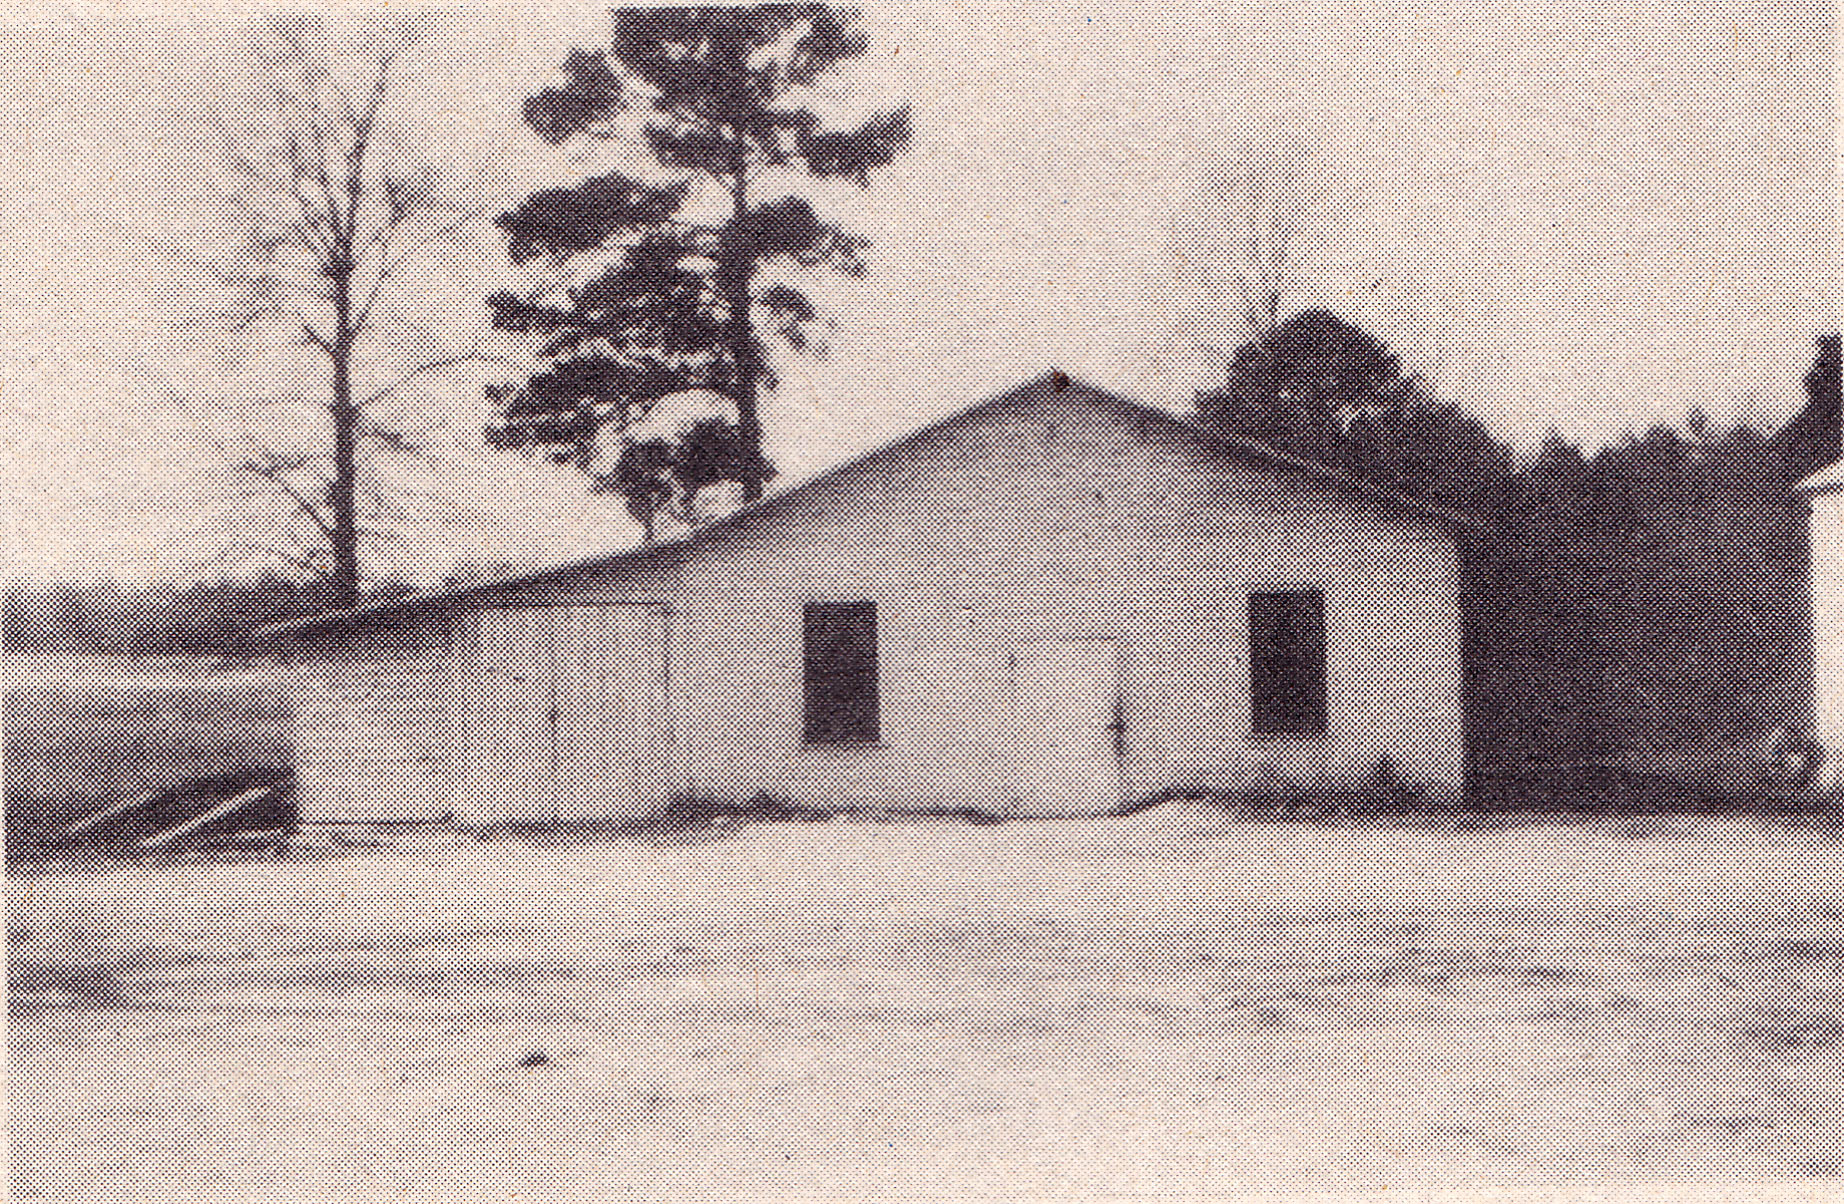 Blythewood School Cafeteria early 1950's.